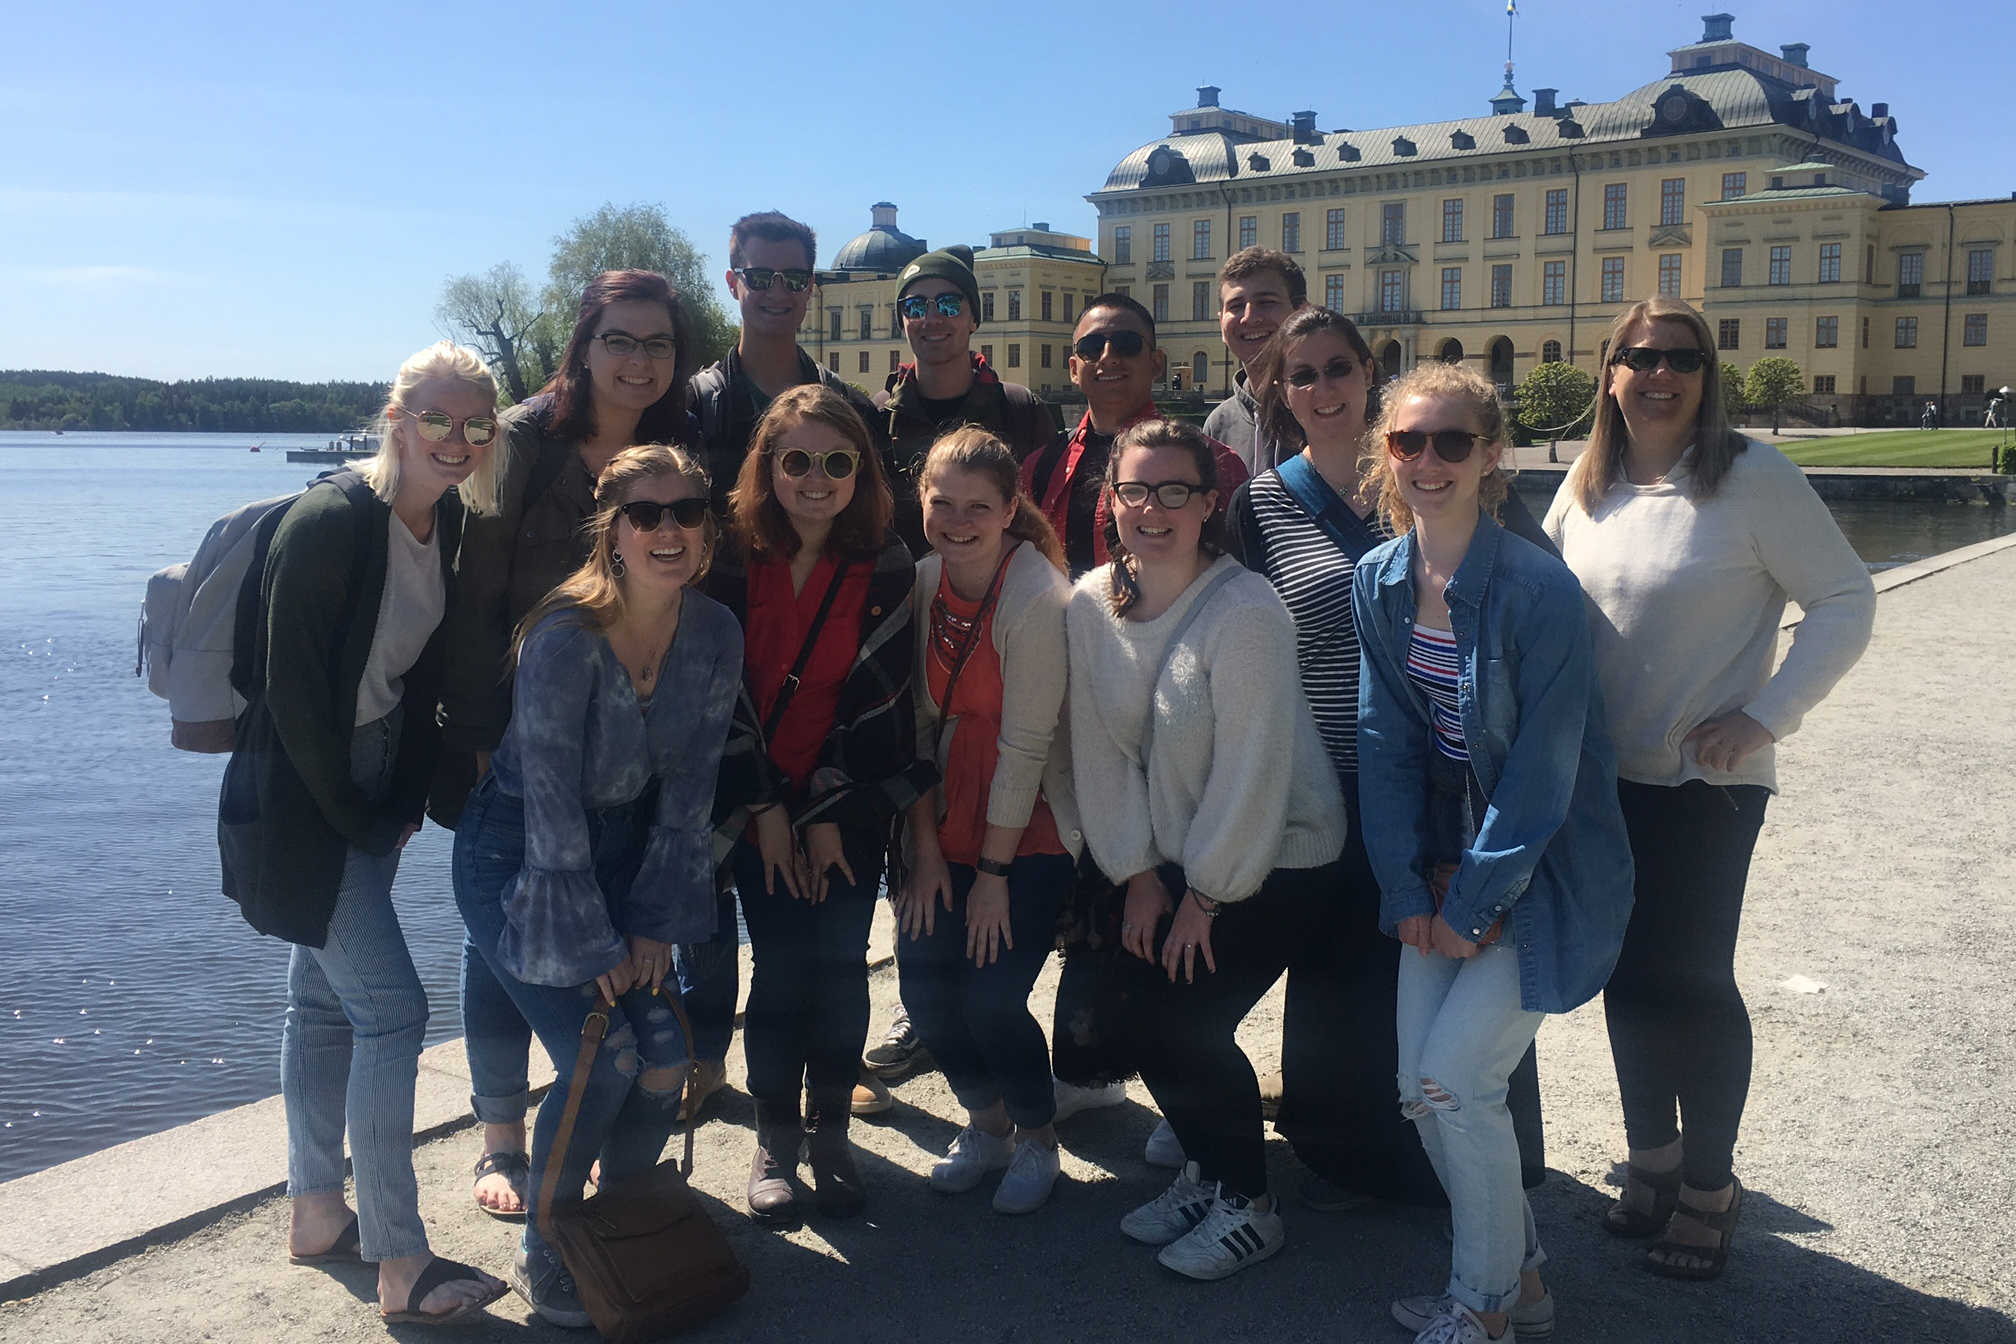 Widner (far right) and the students enjoyed a boat ride to Drottningholm Palace.